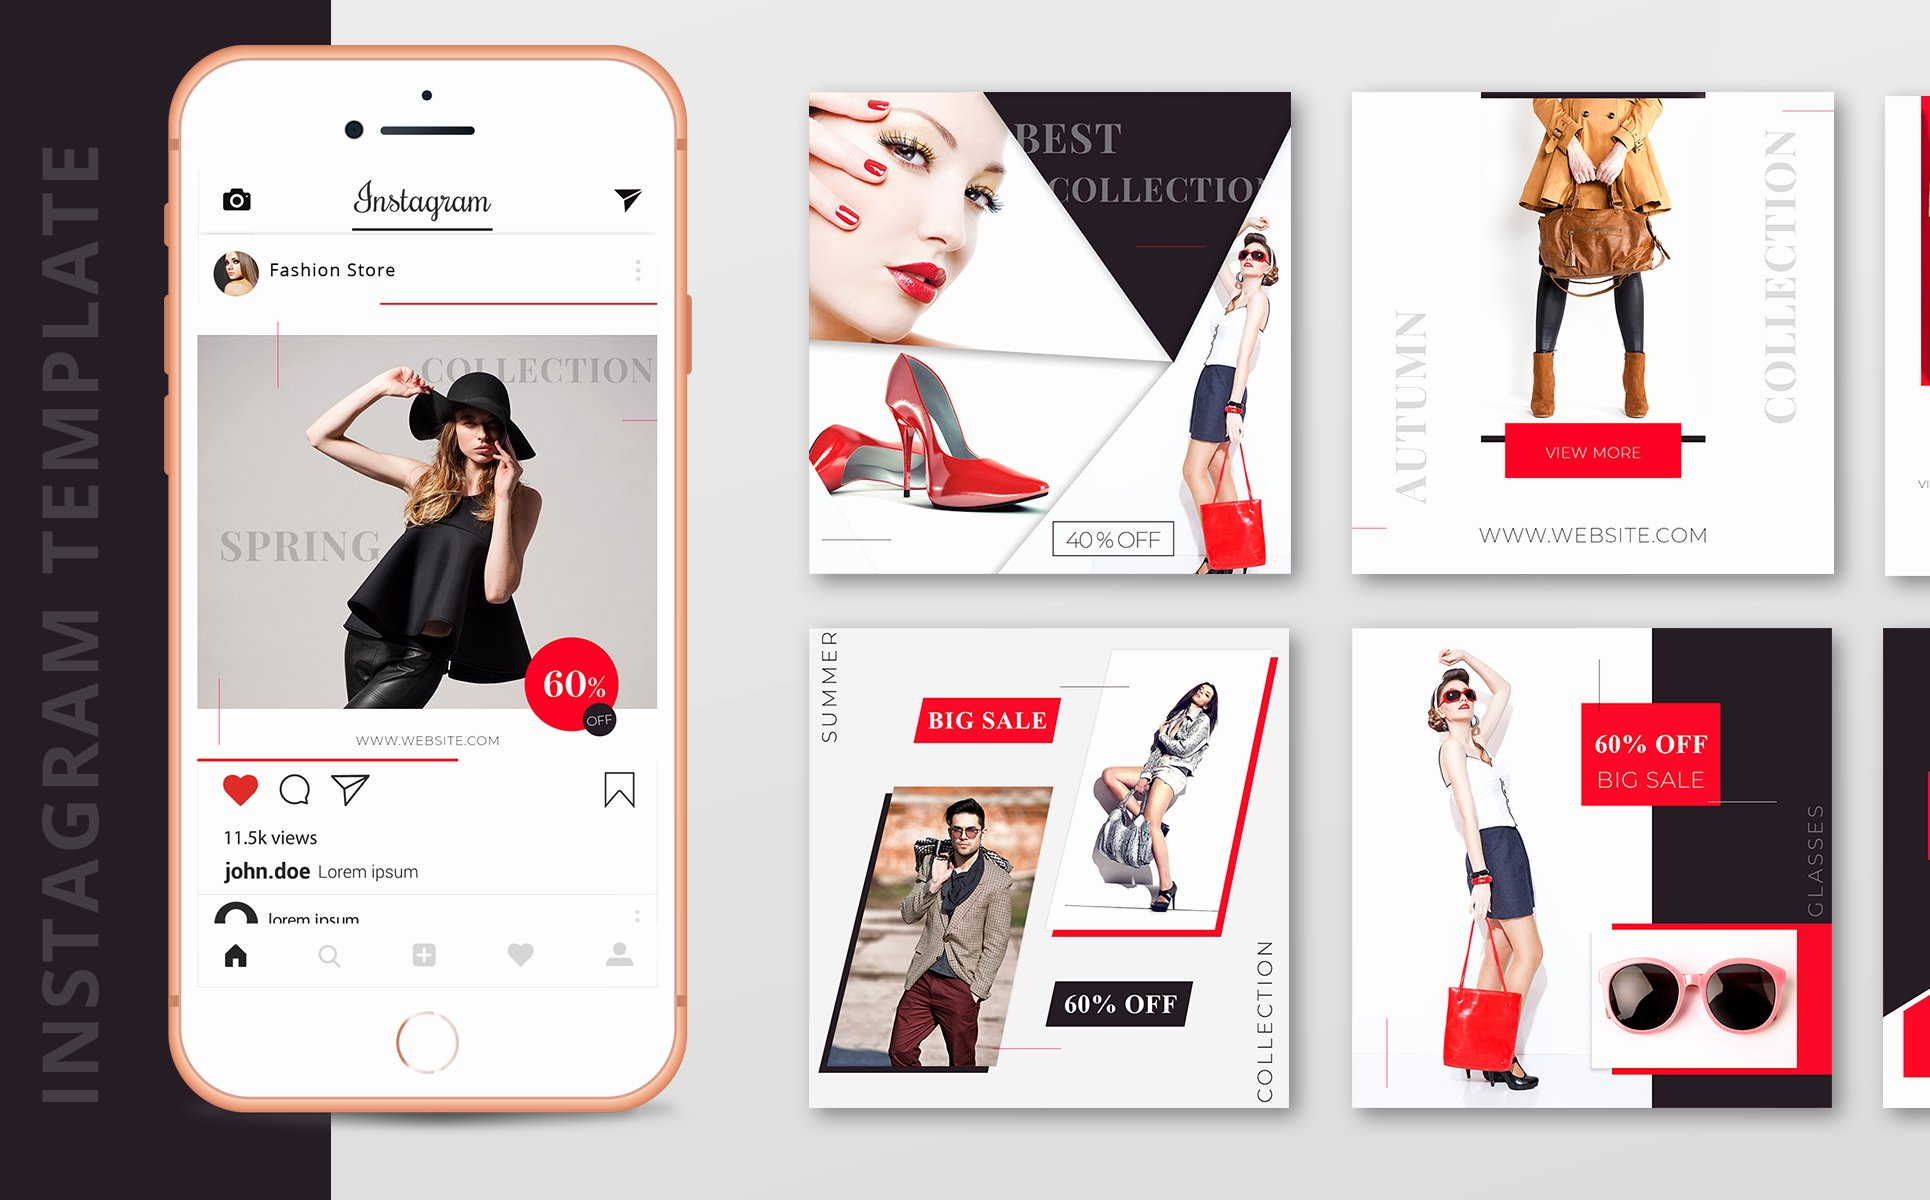 Social Media Template Psd Fresh 10 Fashion Instagram Template Psd Designs social Media